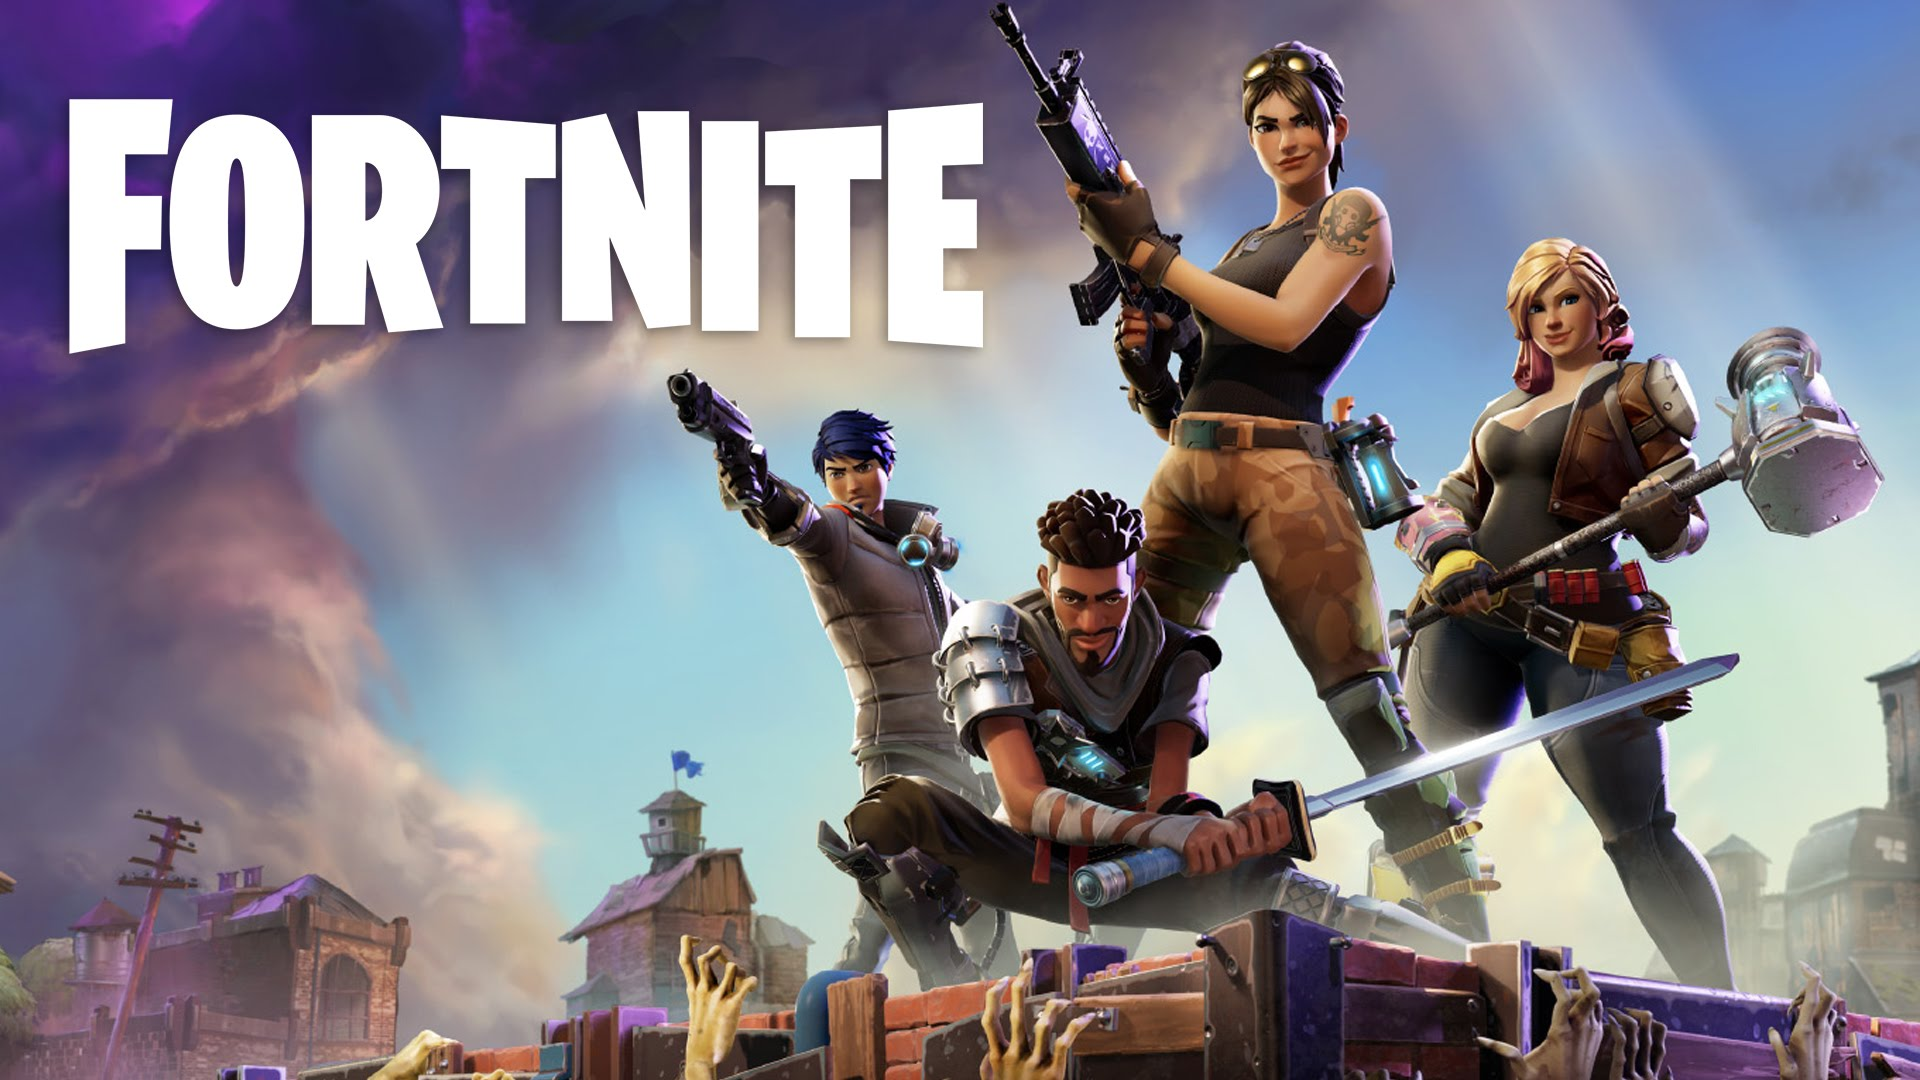 Fortnite Game for PC Free Download